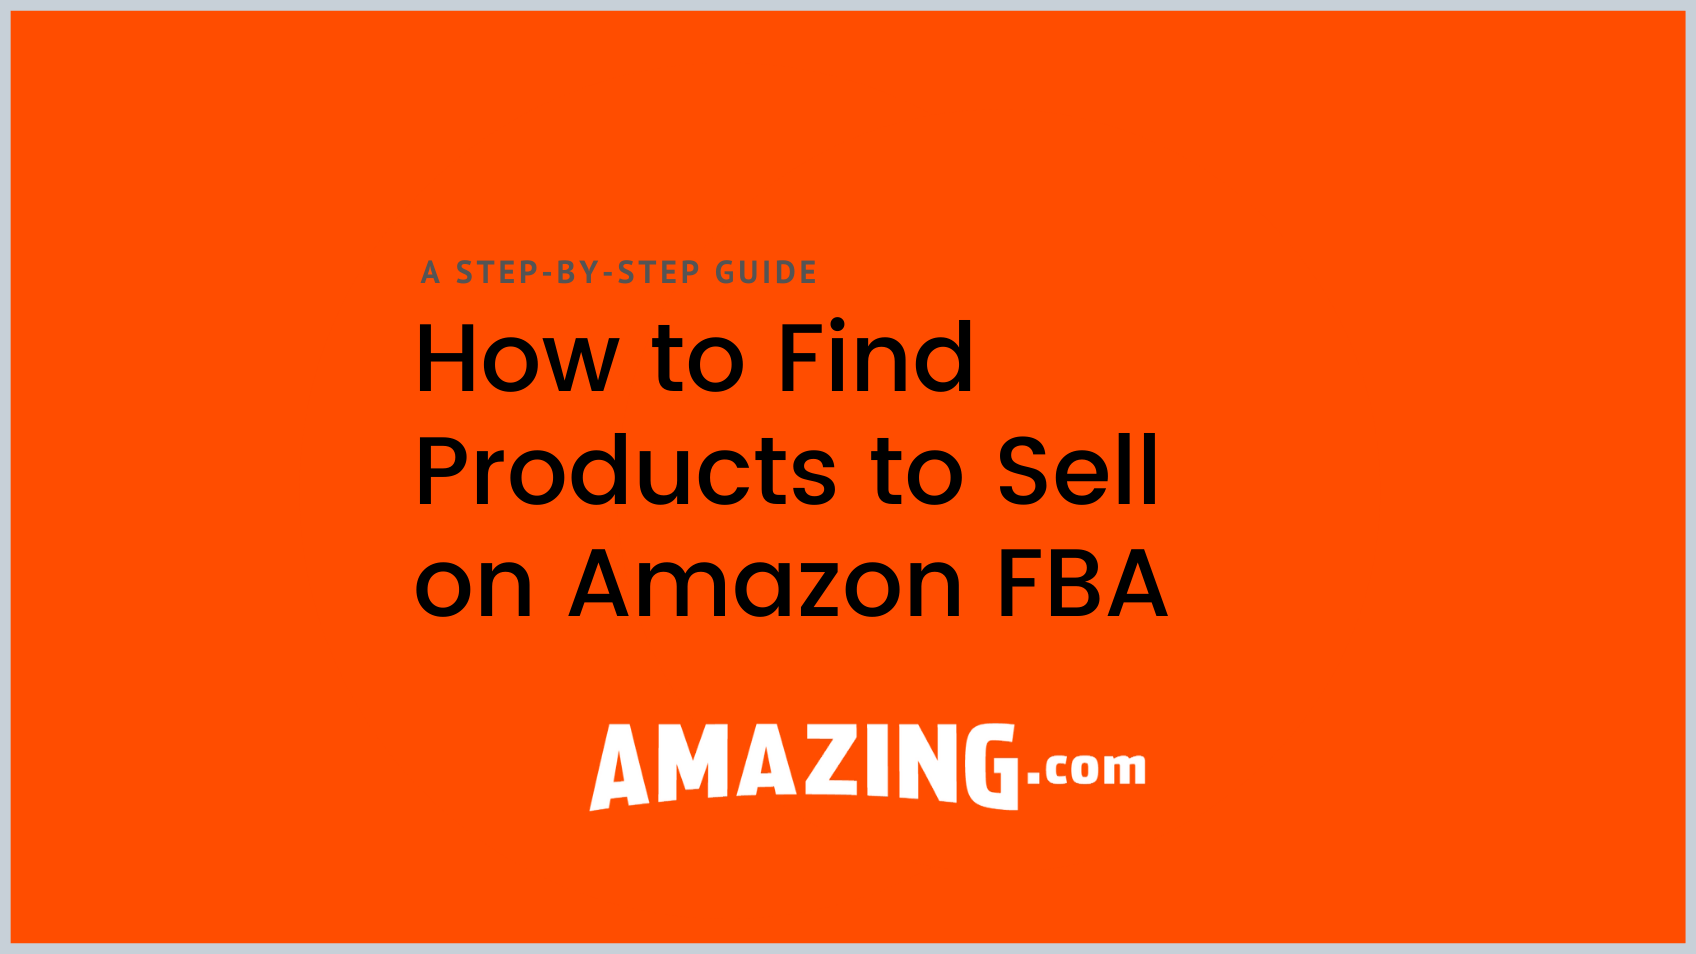 featured image: how to find products to sell on amazon fba